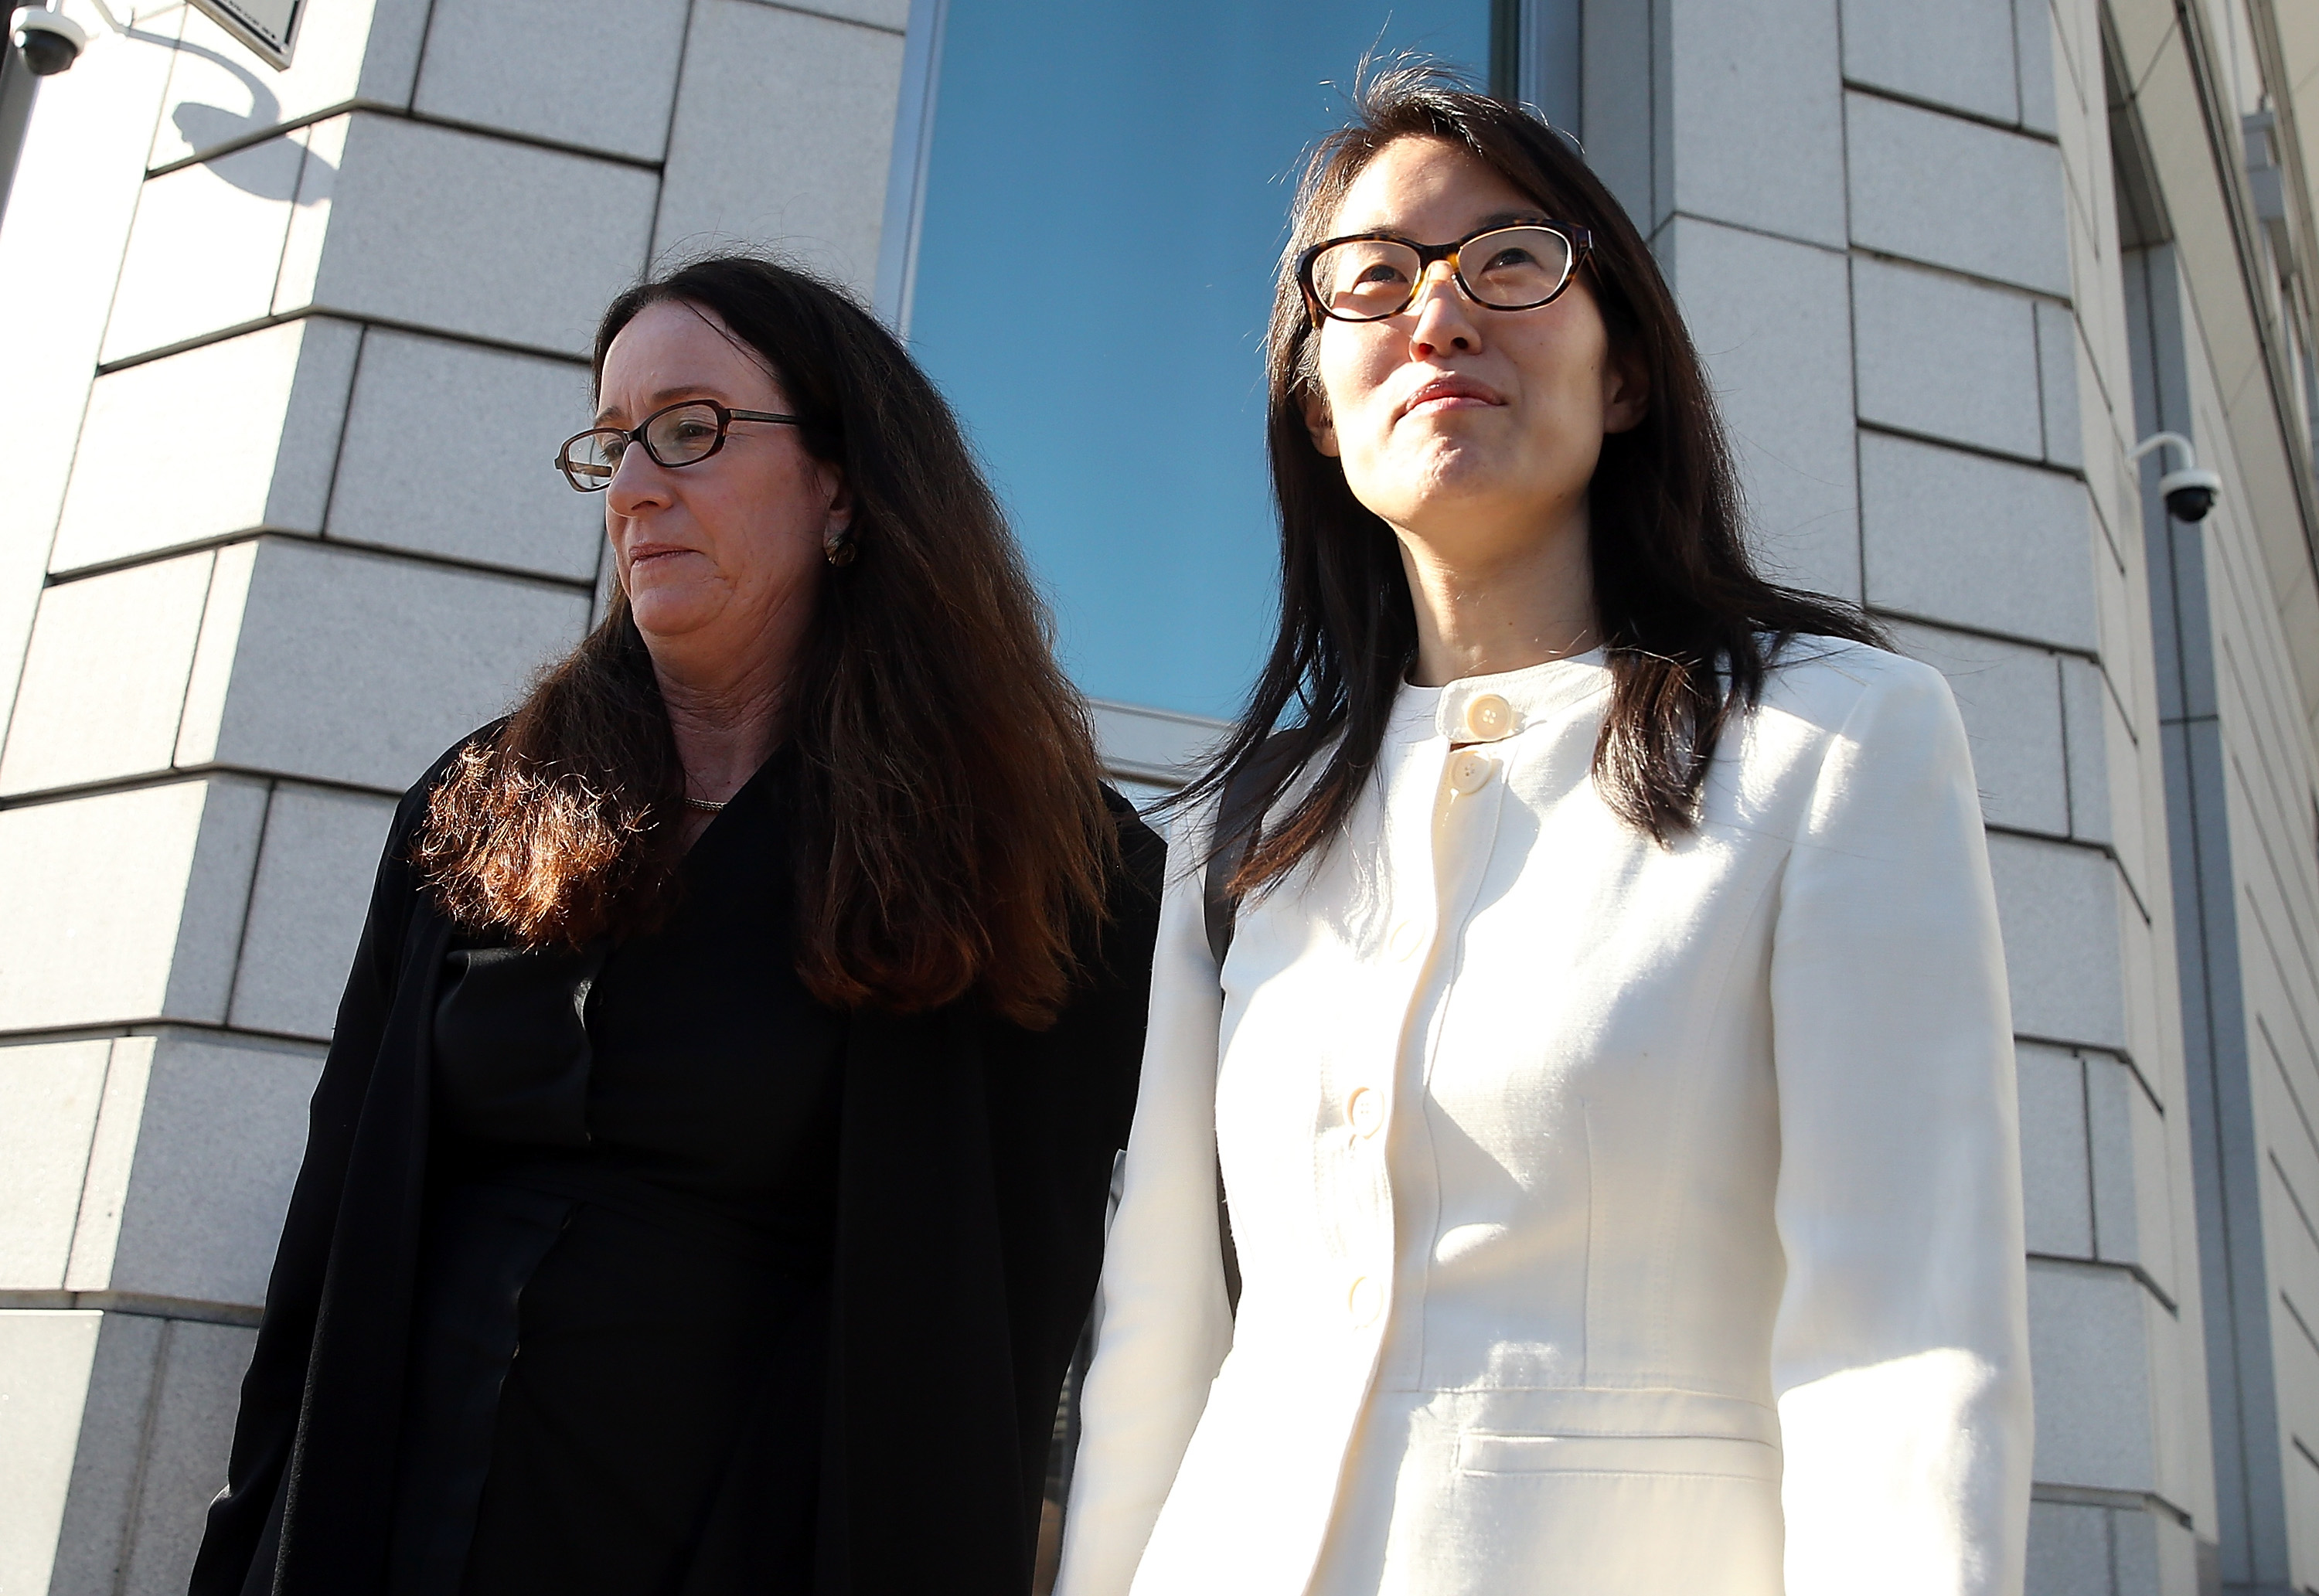 Ellen Pao, right, leaves the courthouse with her attorney Therese Lawless after the jury ruled against her in her sexual discrimination suit against storied venture capital firm Kleiner Perkins.